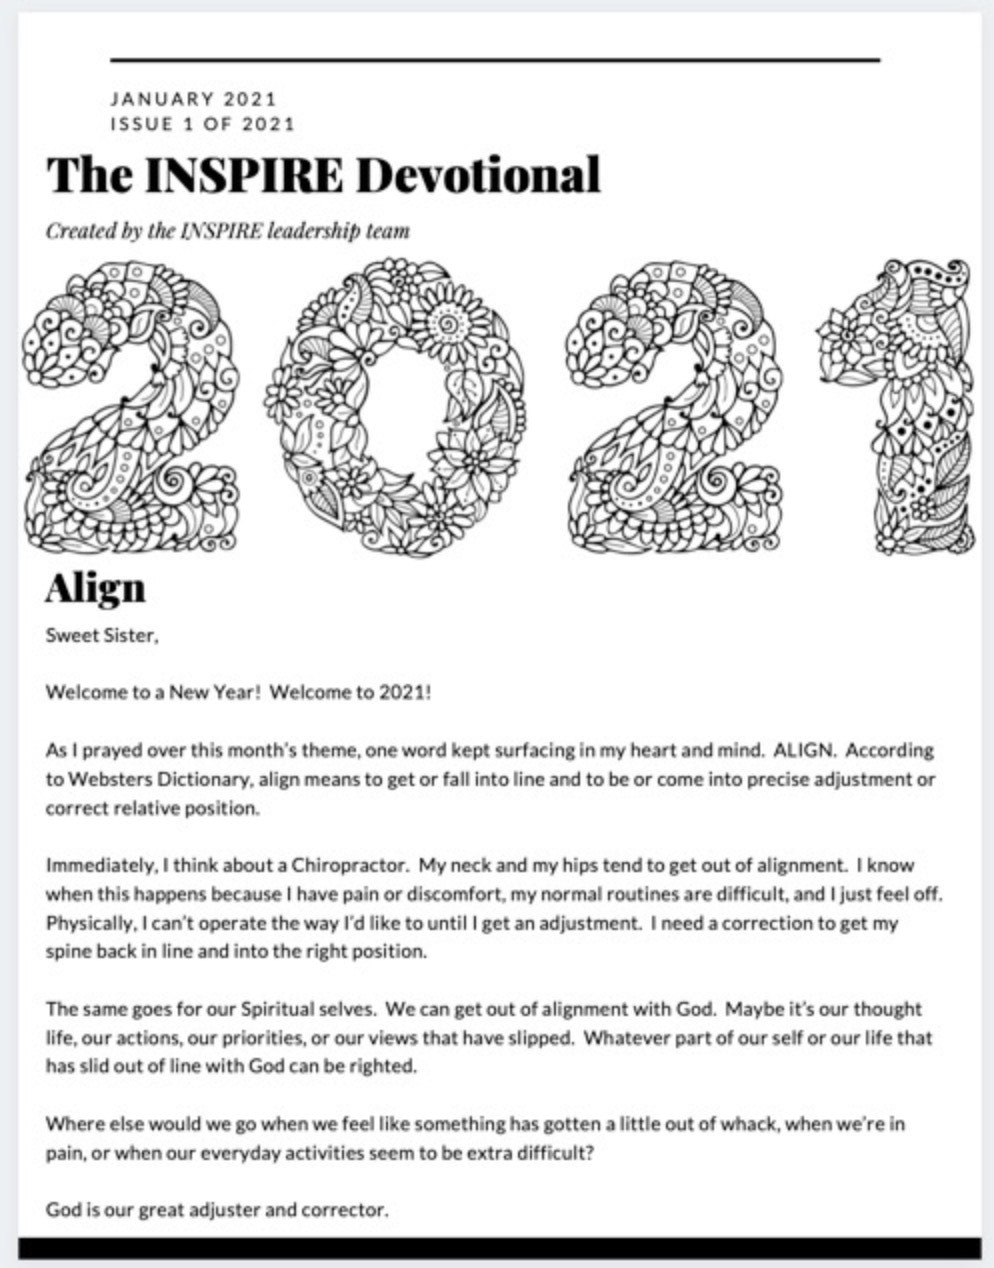 January 2021 The INSPIRE Devotional:  Align